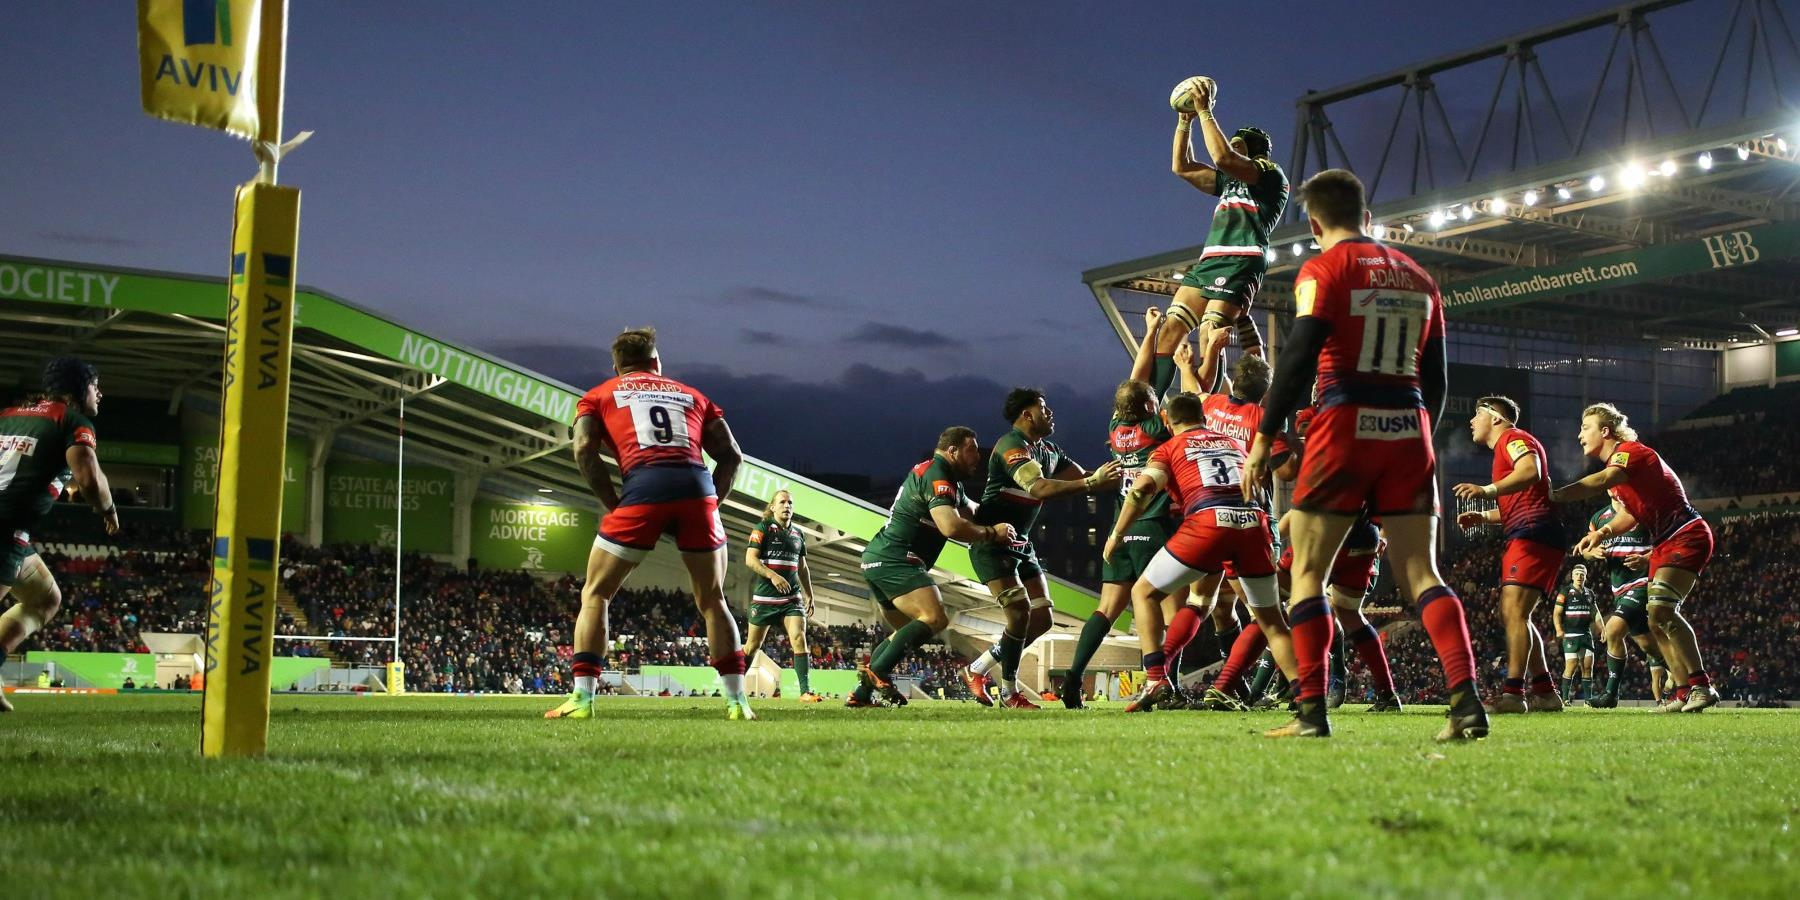 Leicester Tigers vs London Irish